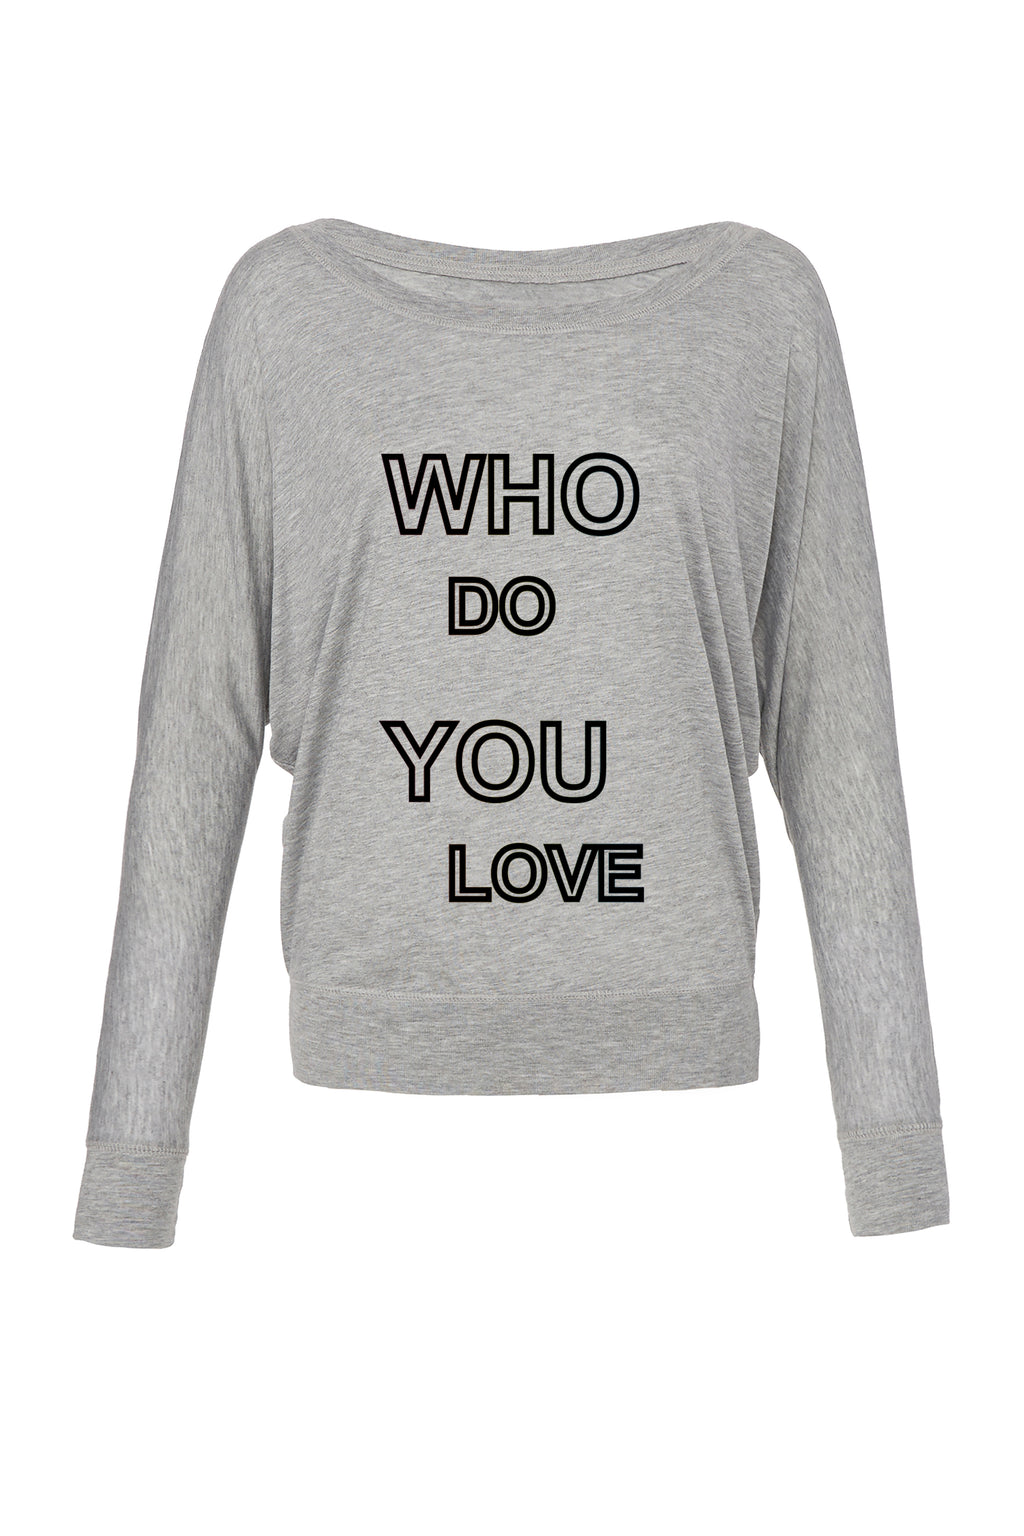 Athletic Heather Graphic Long Sleeve Top: Who Do You Love for 42.00 at ARMY PINK